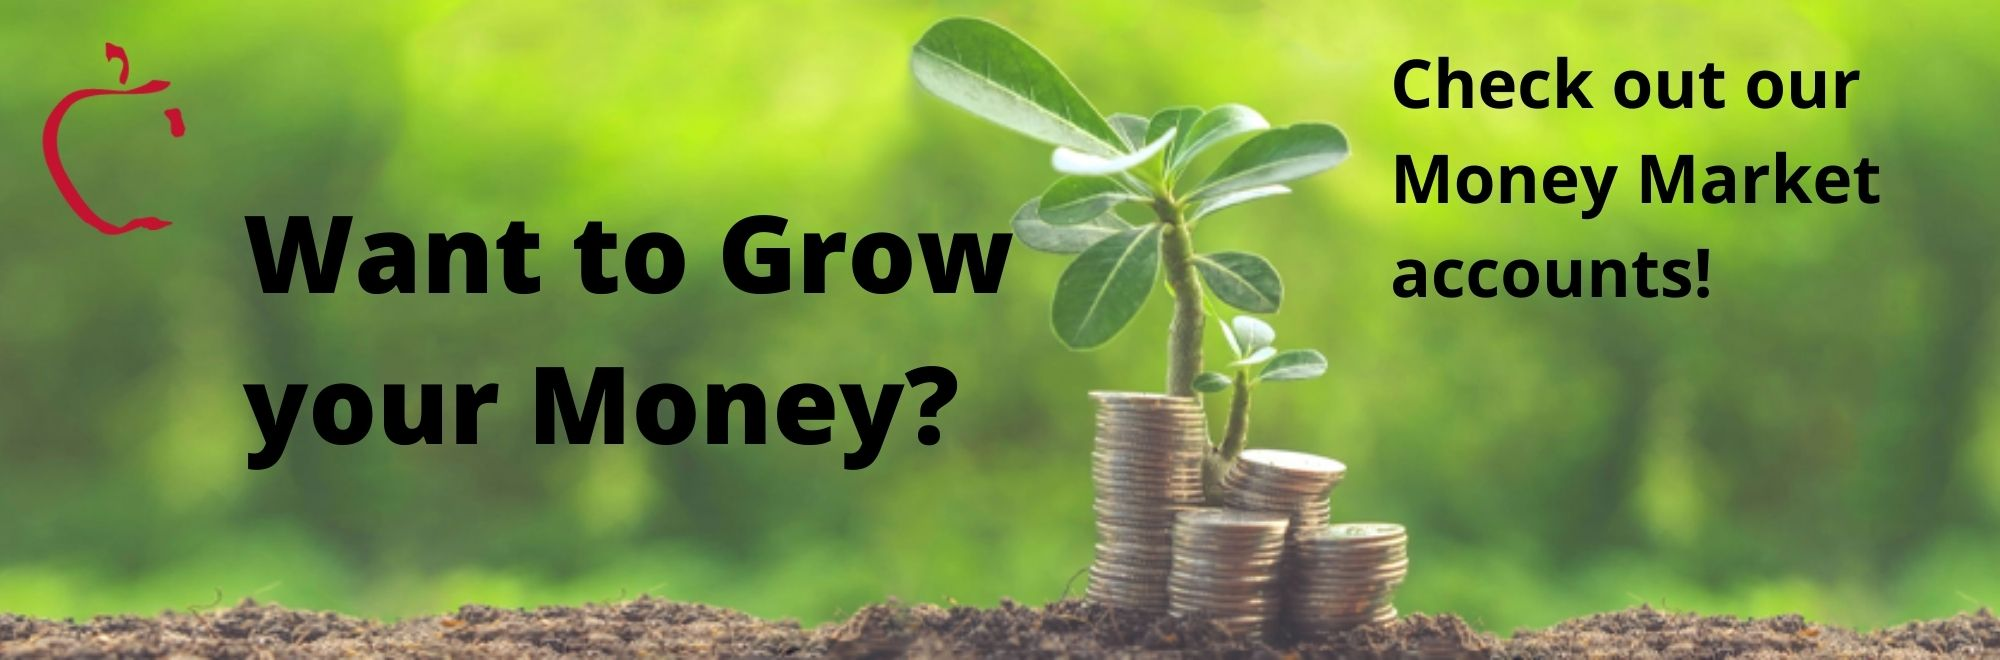 Want to grow your money? Check out our Money Market accounts!